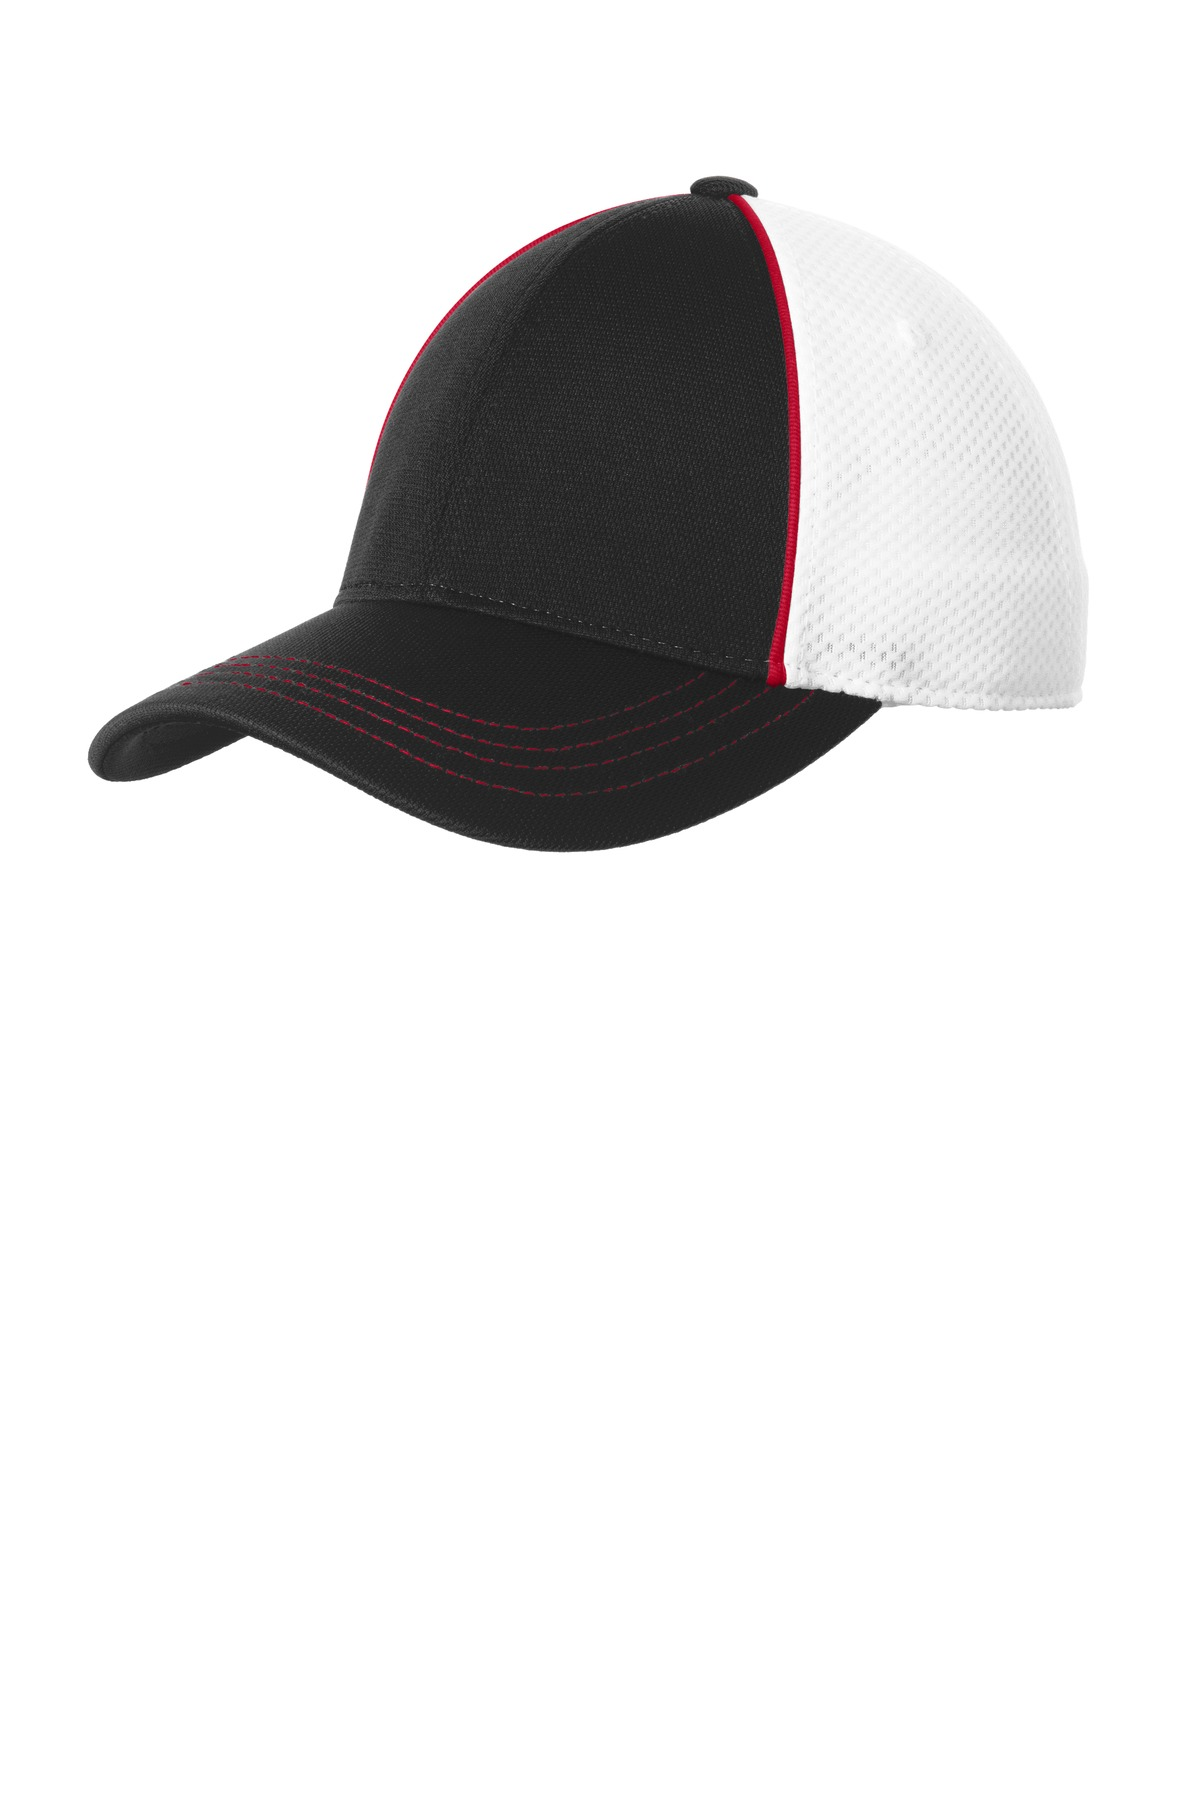 Sport-Tek ®  Piped Mesh Back Cap. STC29 - True Red/ Black/ White